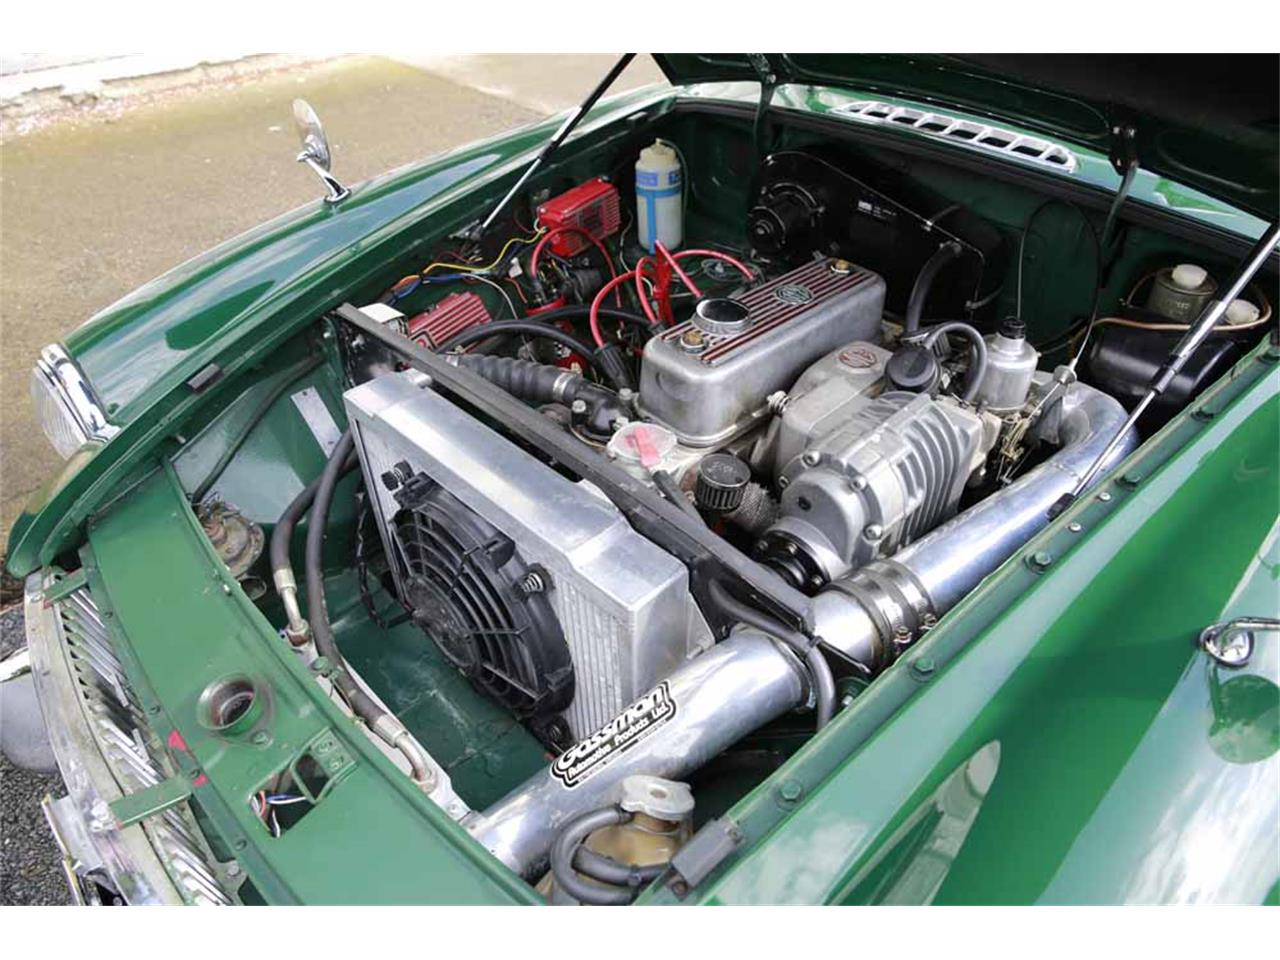 Large Picture of Classic 1965 MG MGB located in Virginia Auction Vehicle Offered by Gassman Automotive - J14W